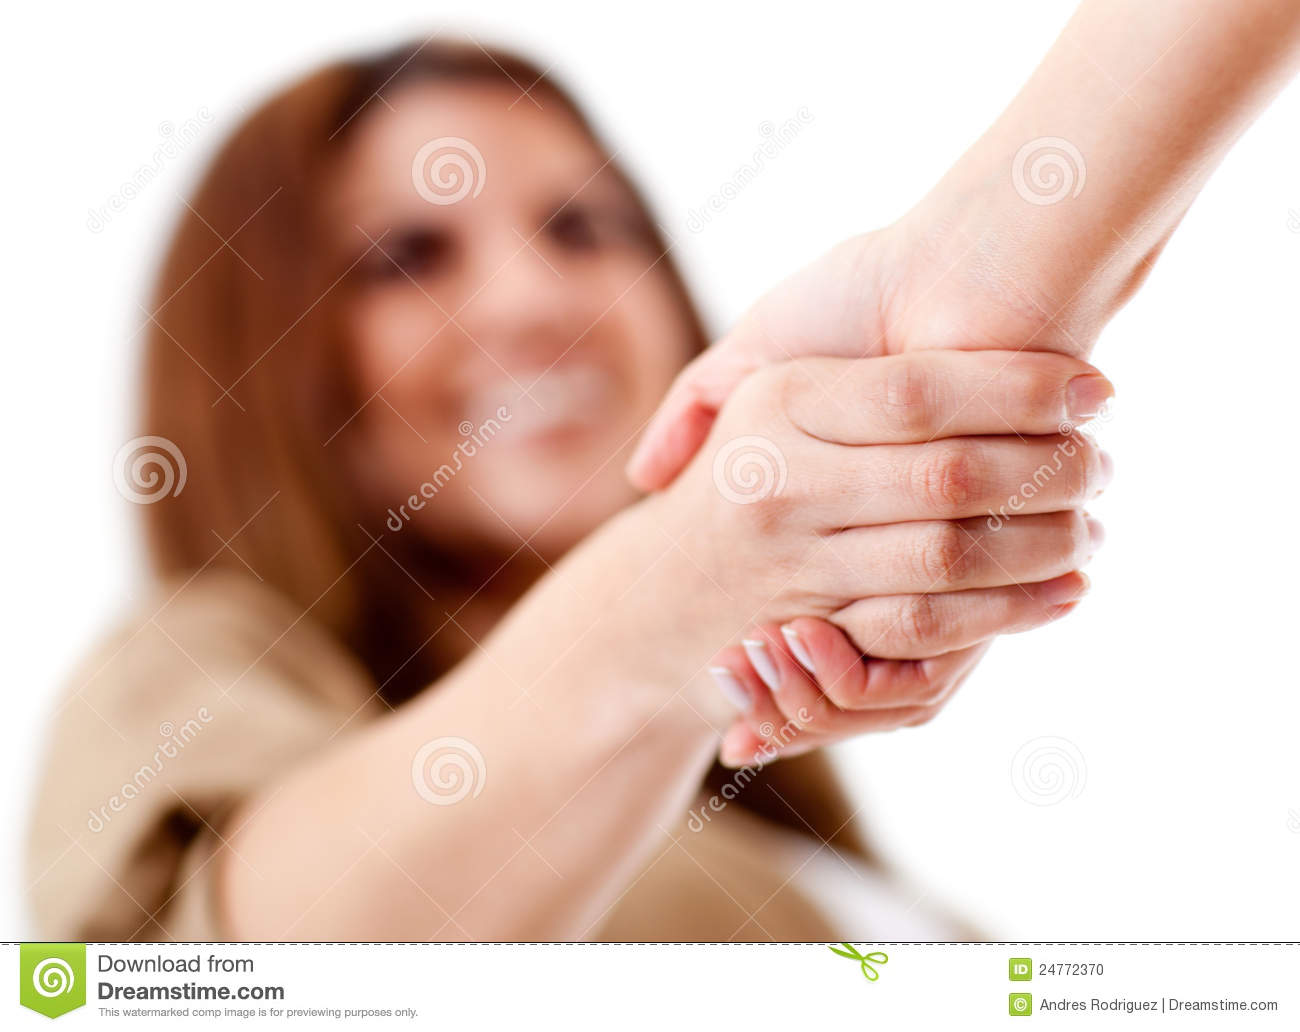 Friendly handshake - isolated over a white background. Business Meeting Handshake